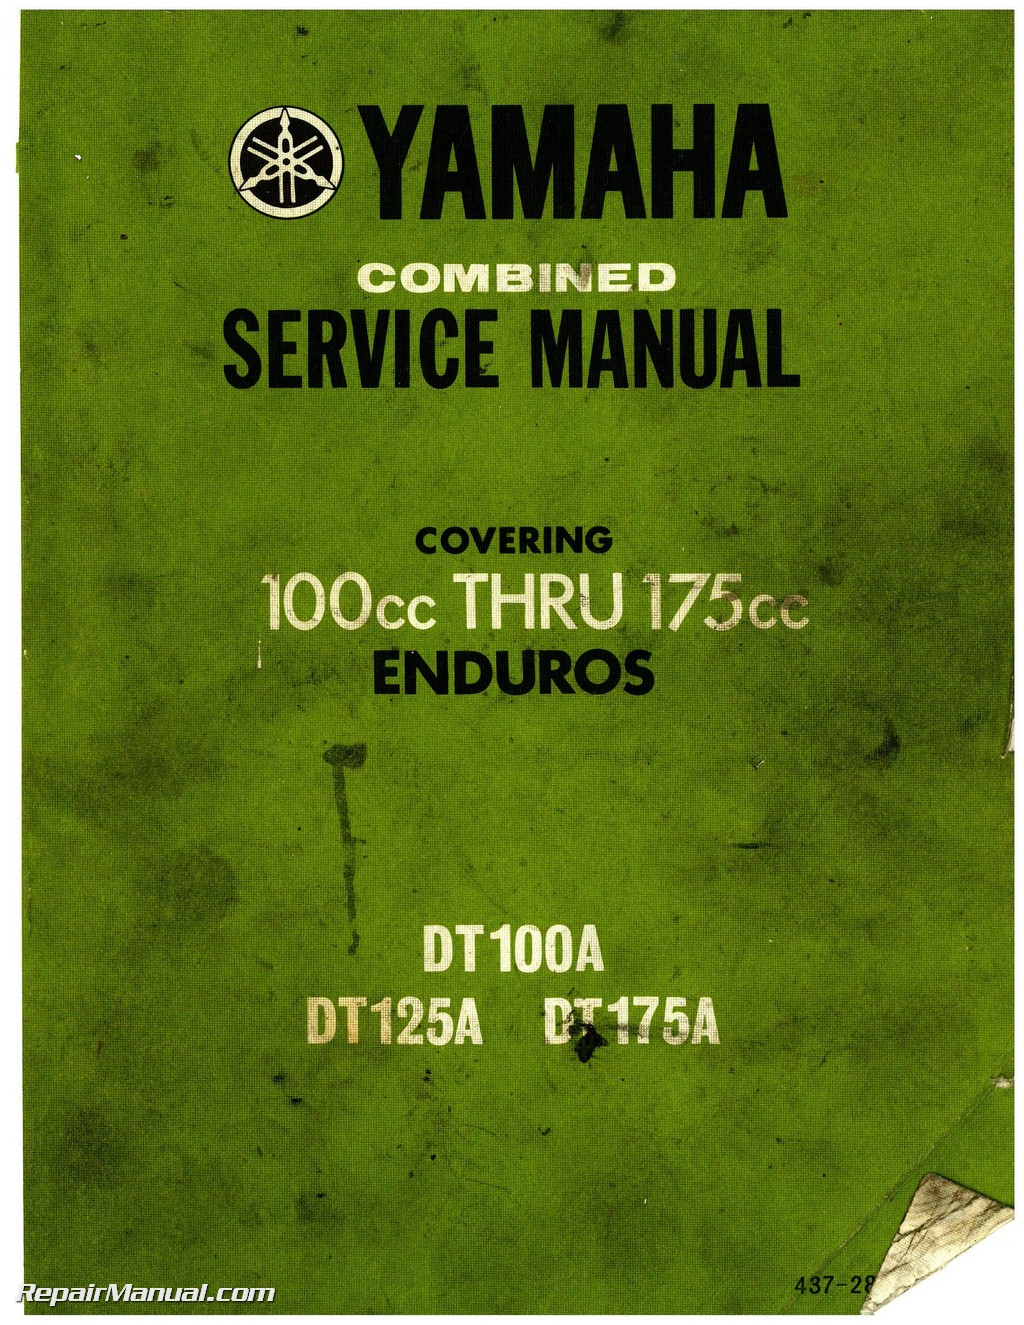 Yamaha Dt 100 Wiring Specifications Diagram Libraries Honda Ct70 Diagrams Home Of The Pardue Brothers 1974 Dt100 Dt125 Dt175 Enduro Motorcycle Service Manualyamaha 20